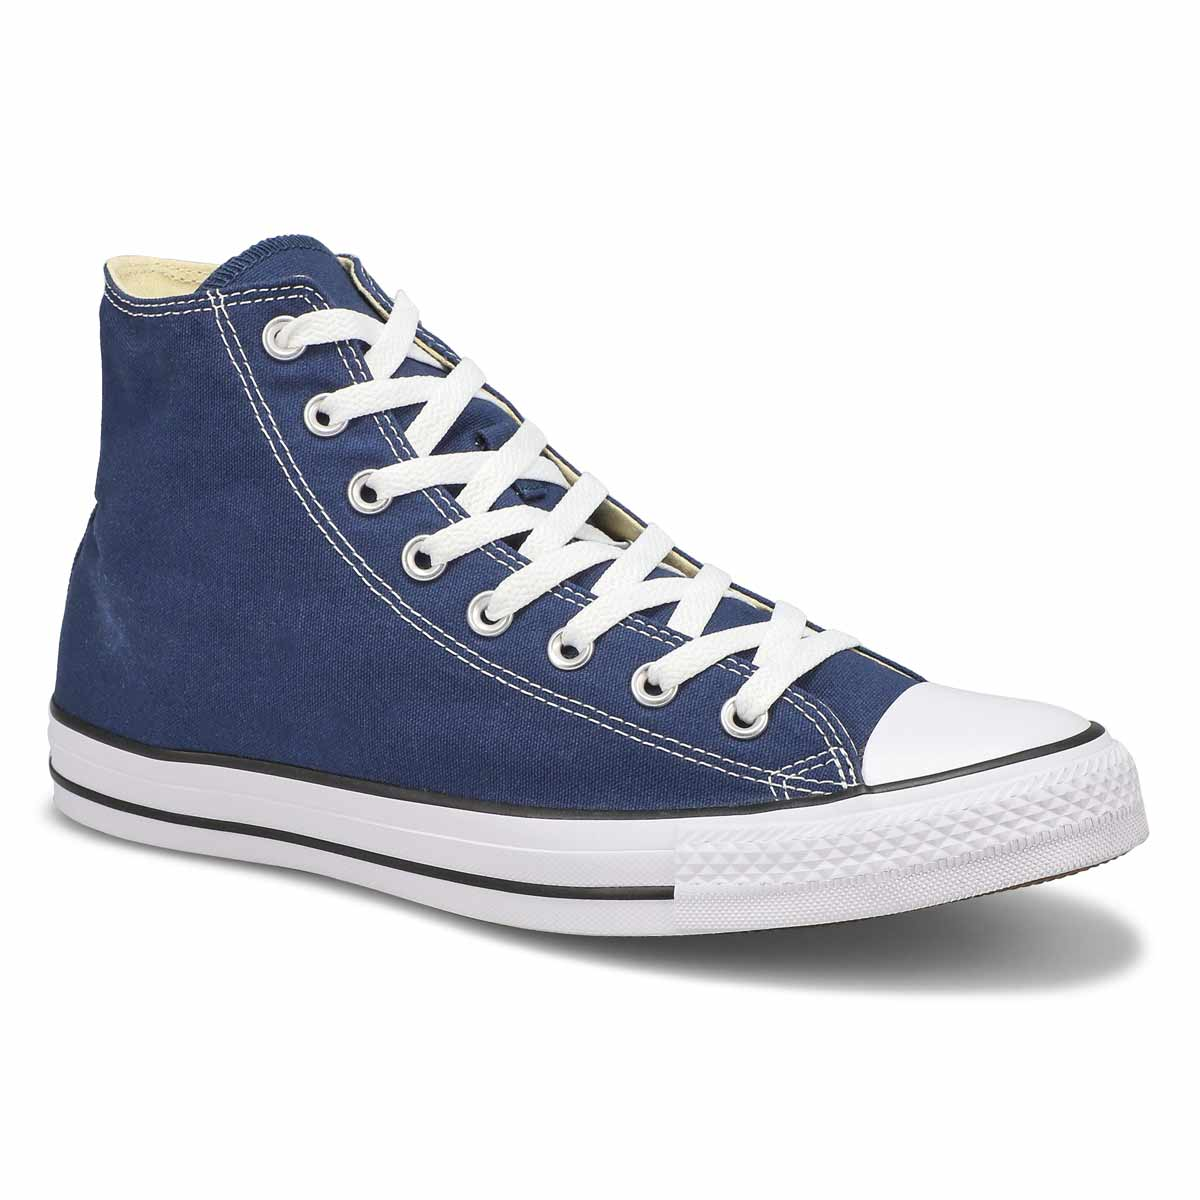 Lds CT All Star Core Hi nvy high top snk